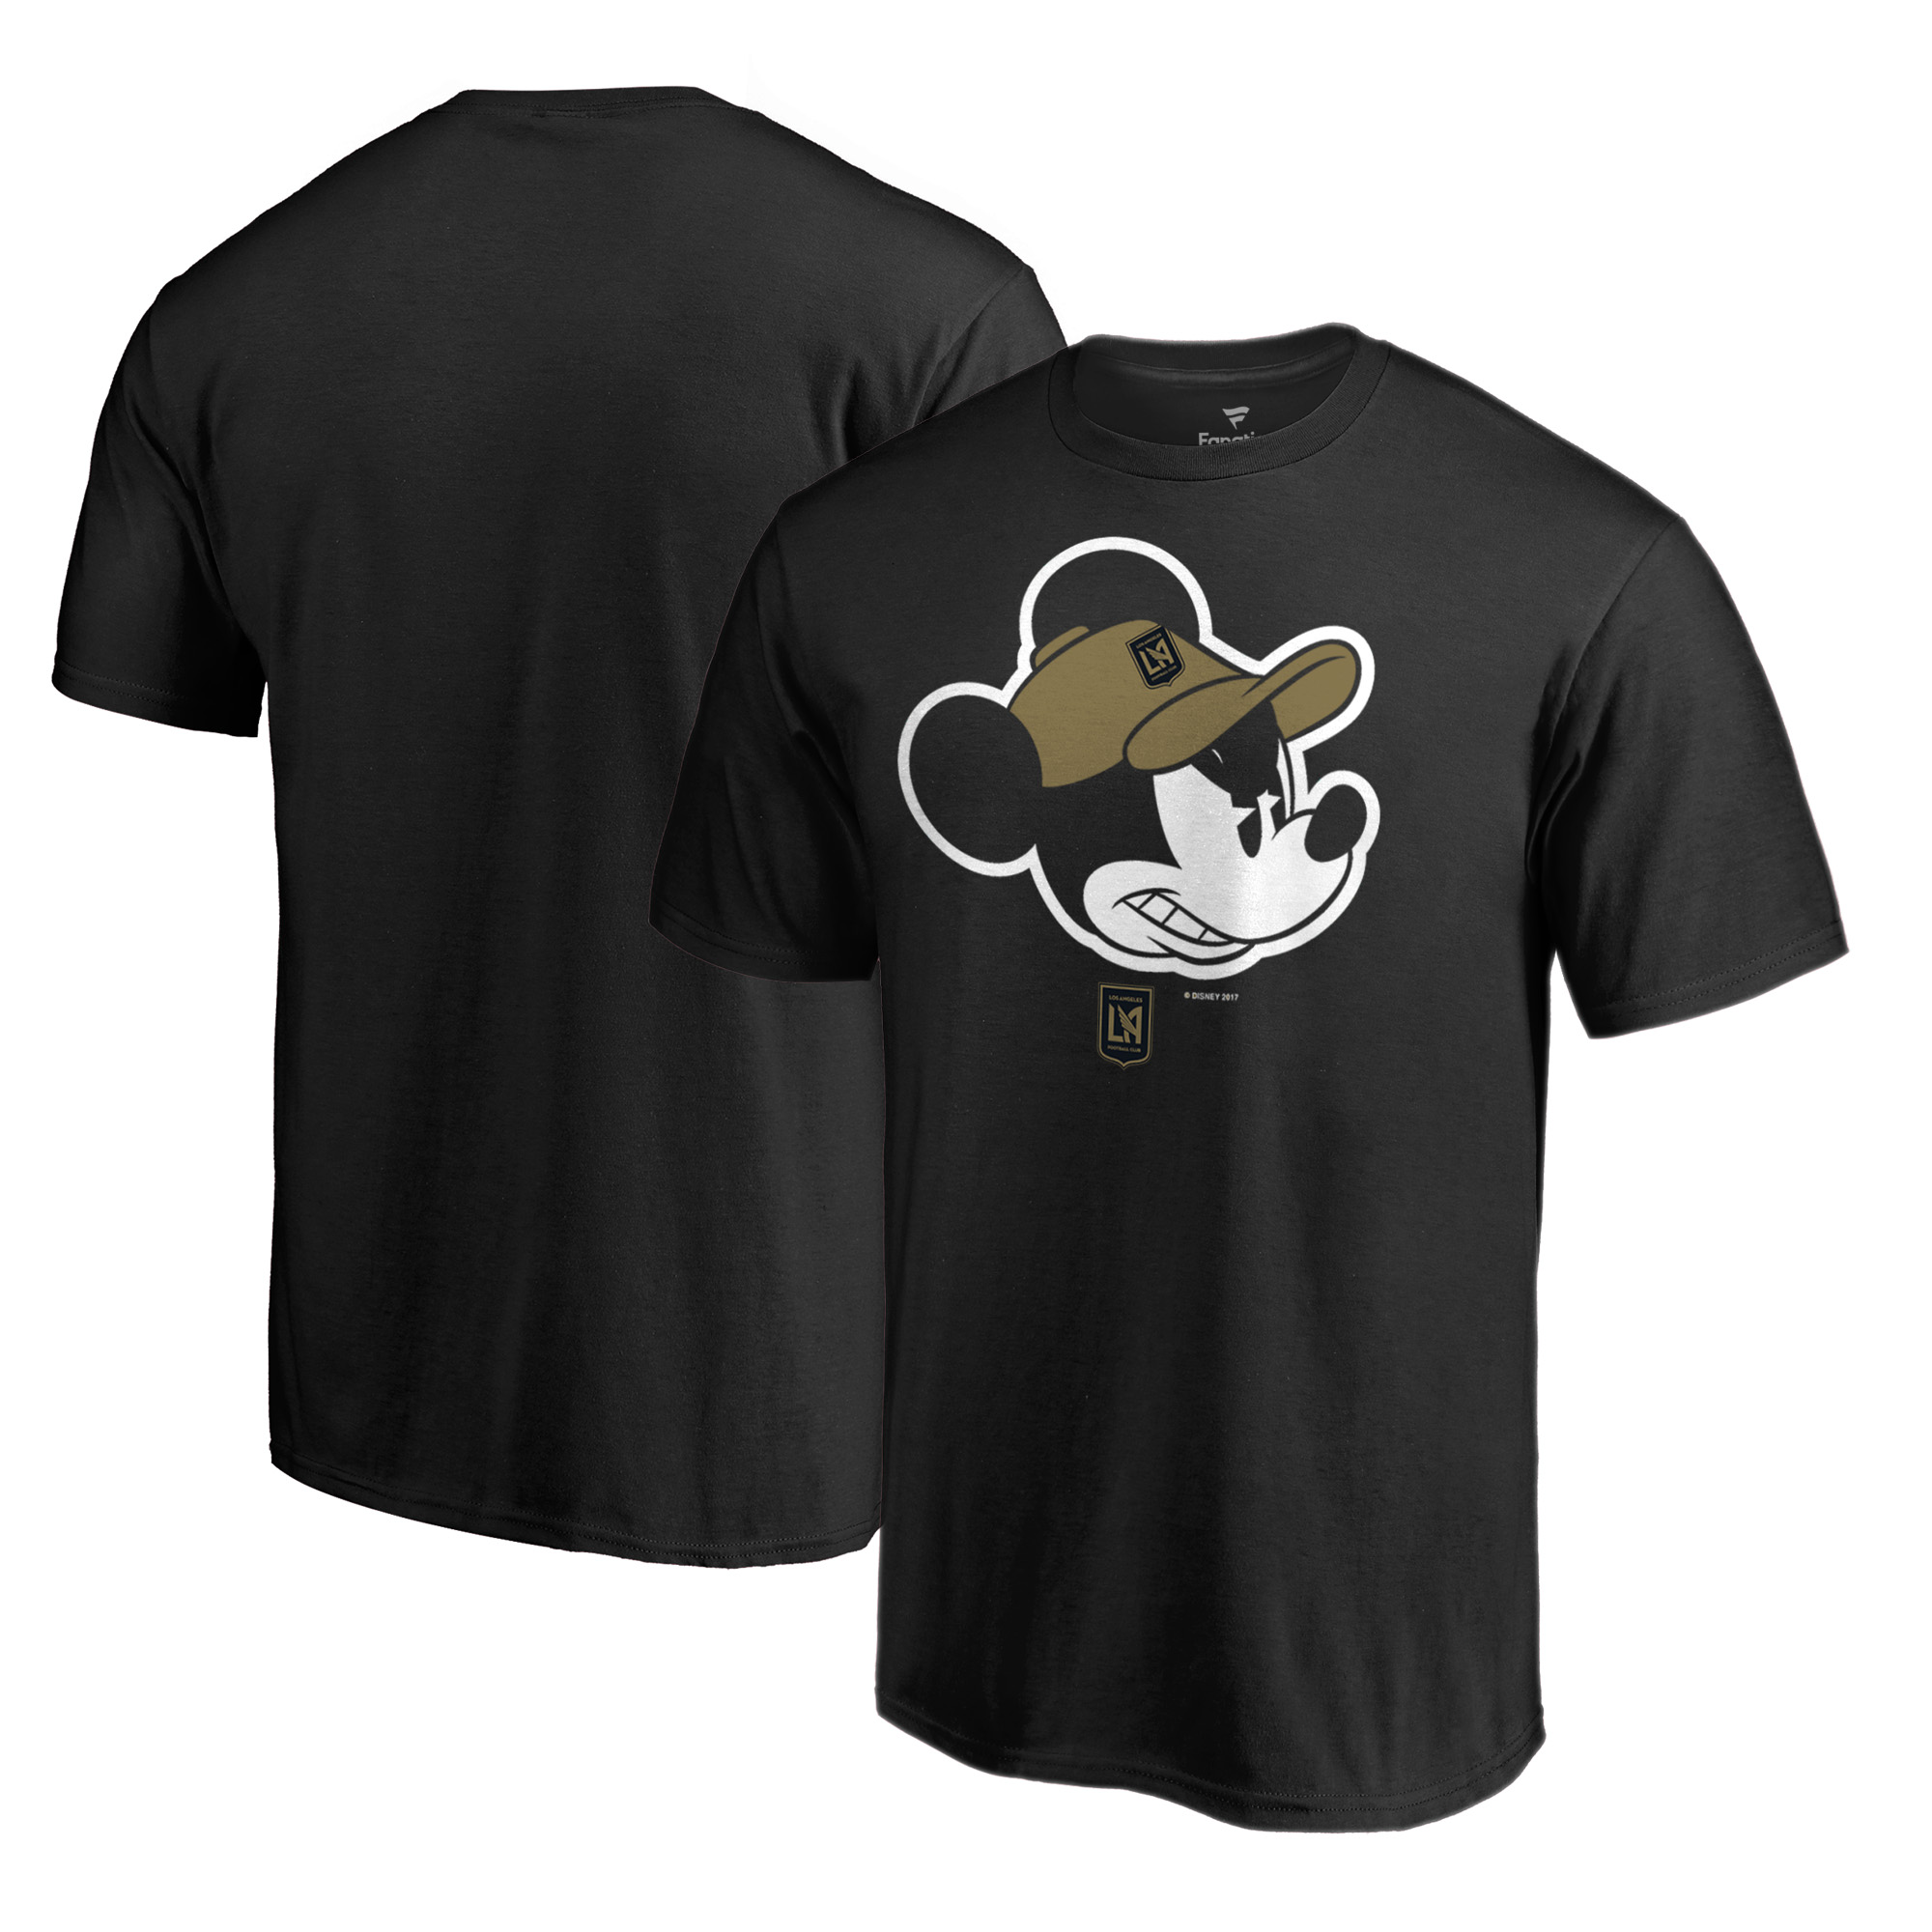 LAFC Fanatics Branded Disney Game Face T-Shirt - Black